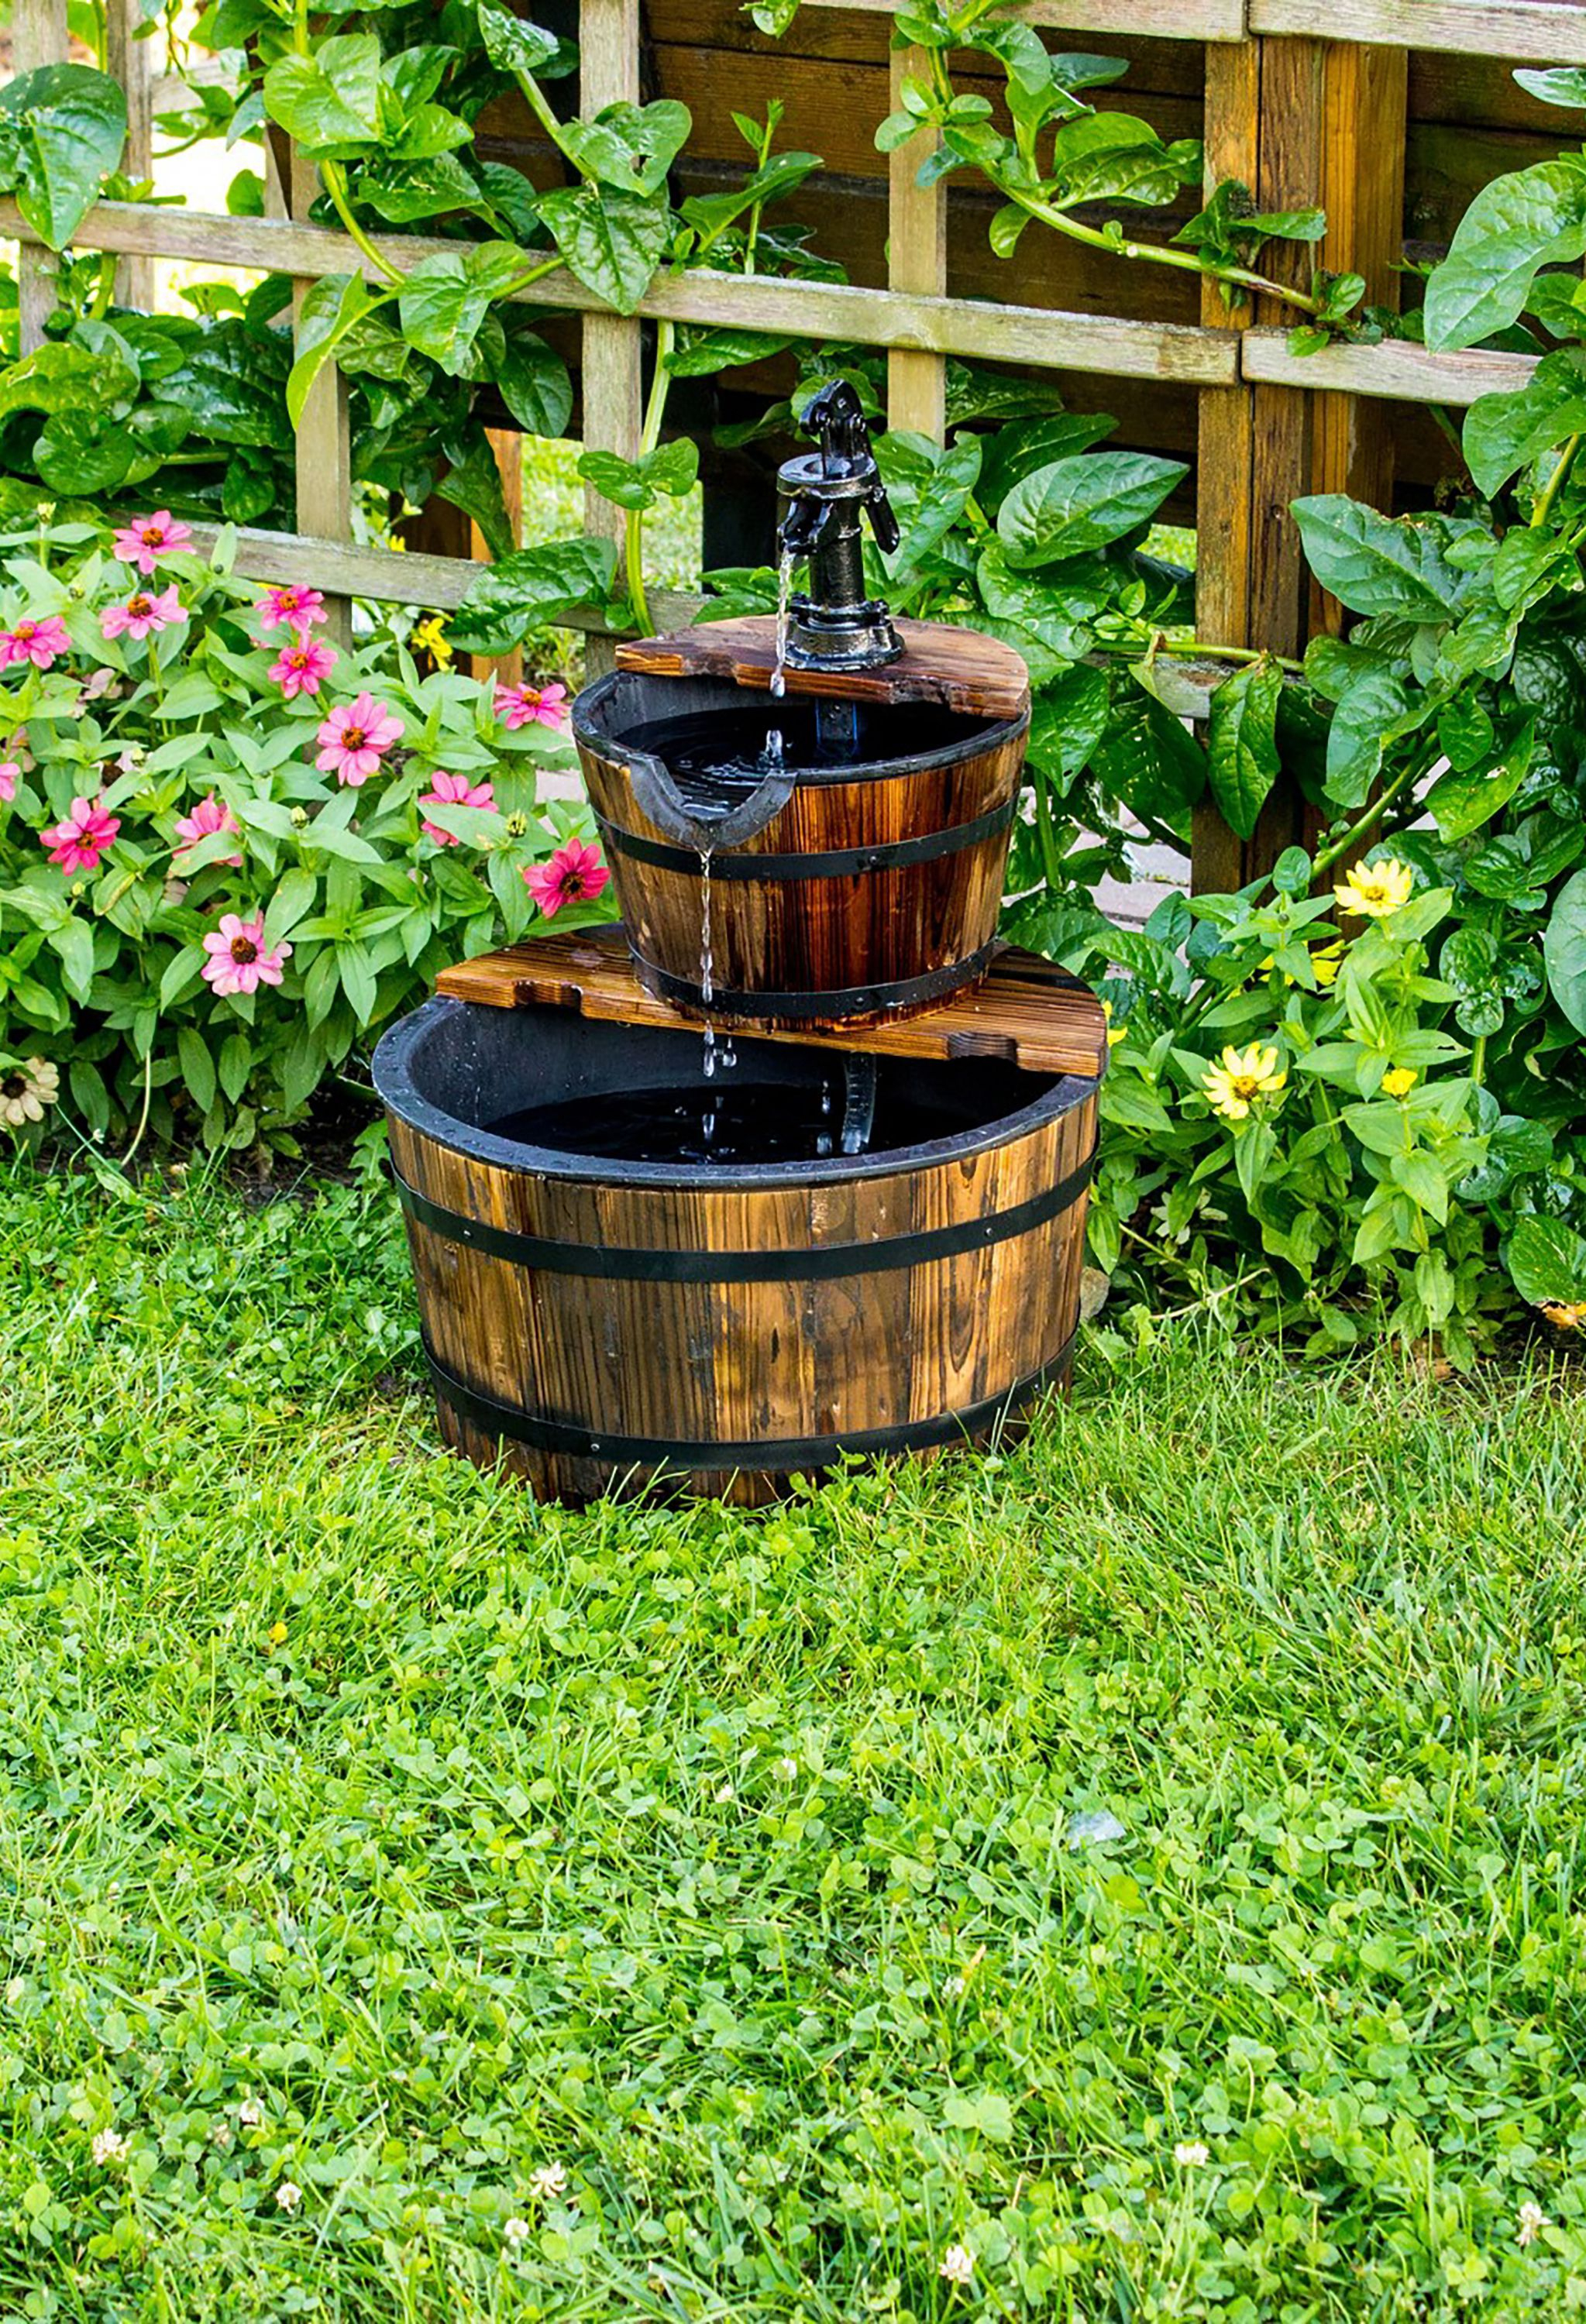 22 Outdoor Fountain Ideas How To Make A Garden Fountain For Your throughout Backyard Water Feature Ideas